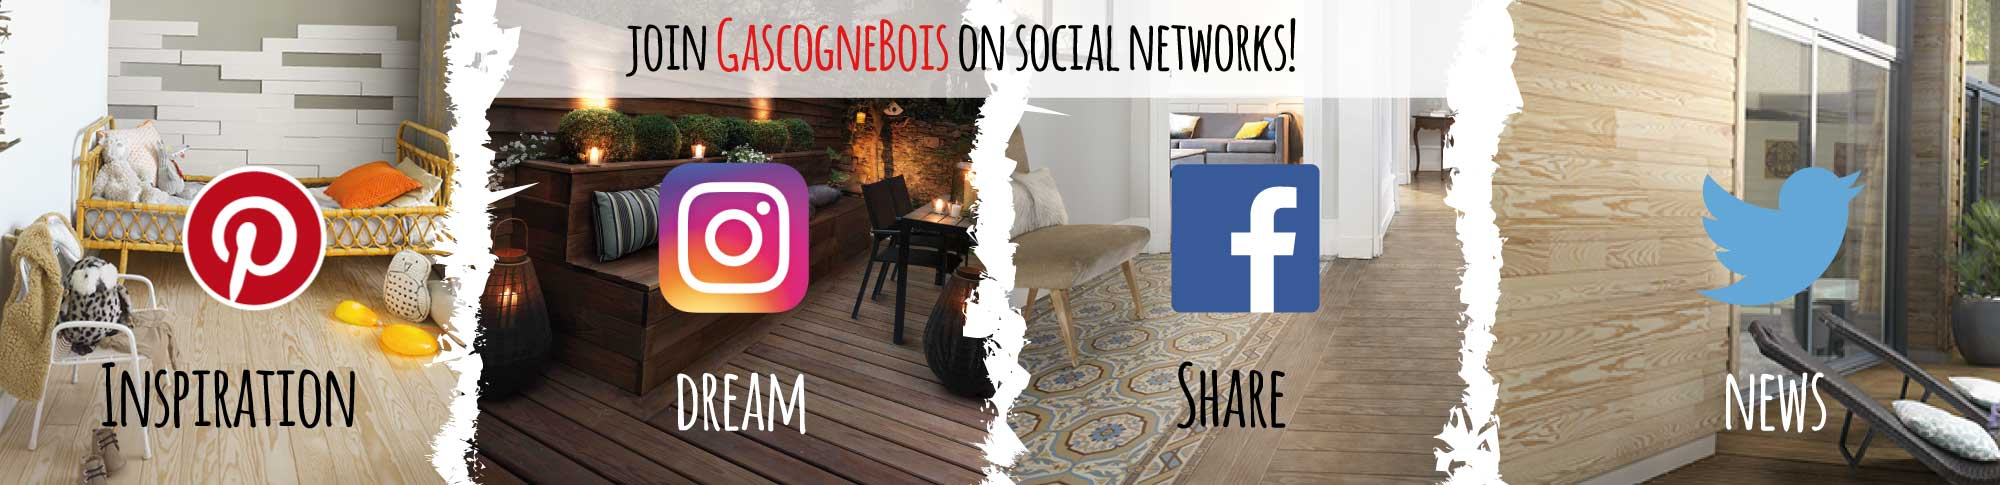 Join Gascogne Bois on social networks pinterest, instagram, facebook, twitter